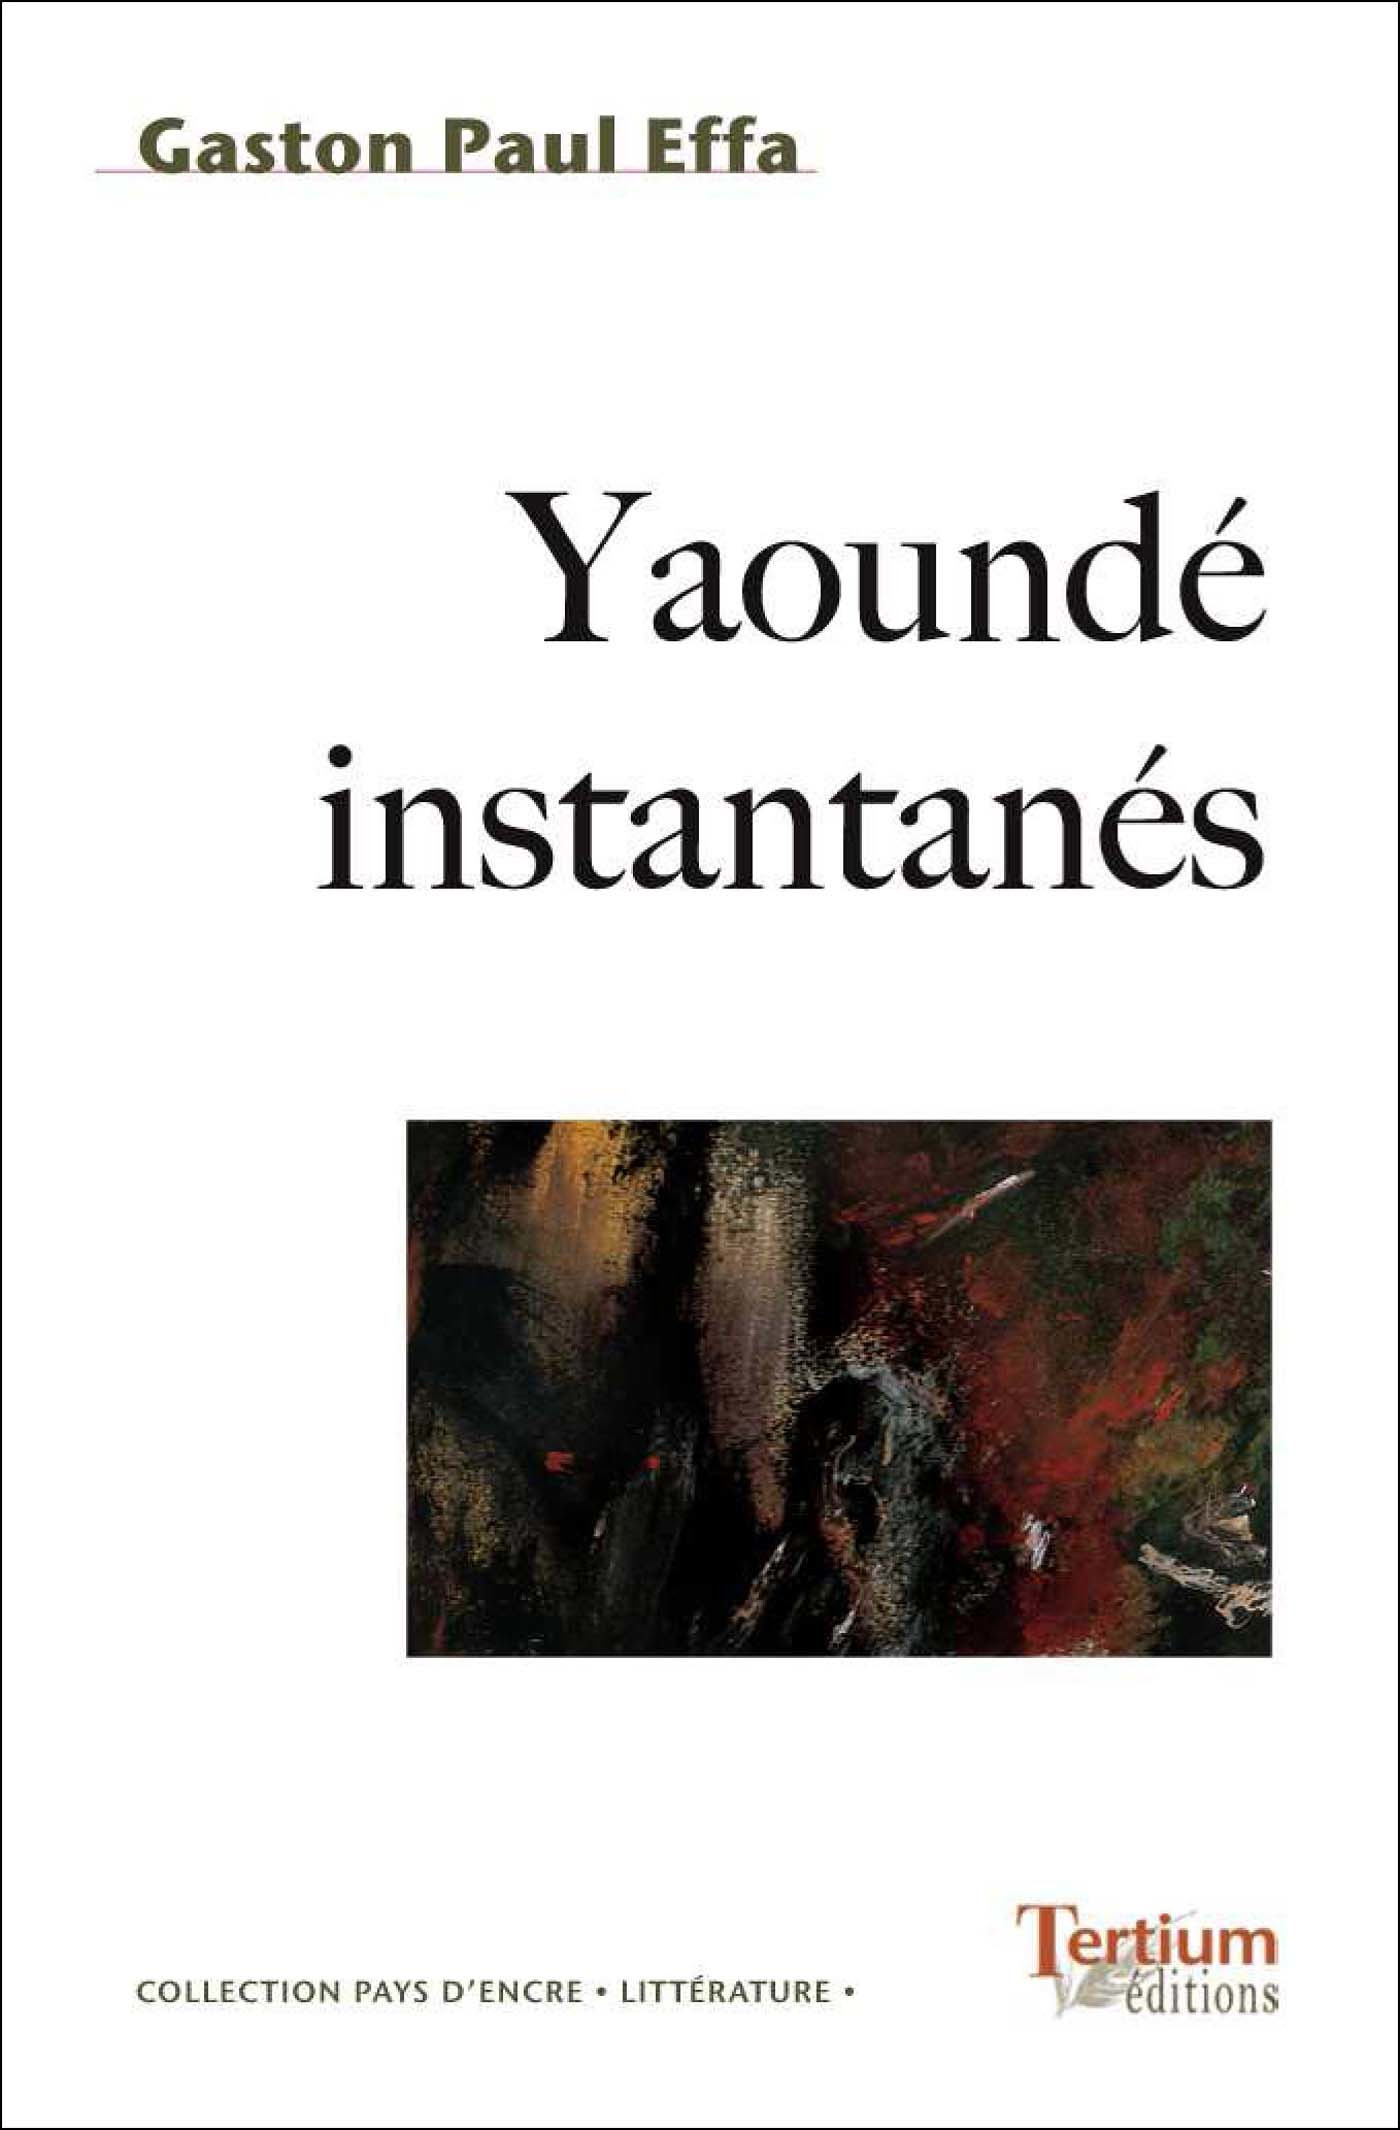 Yaounde instantanes